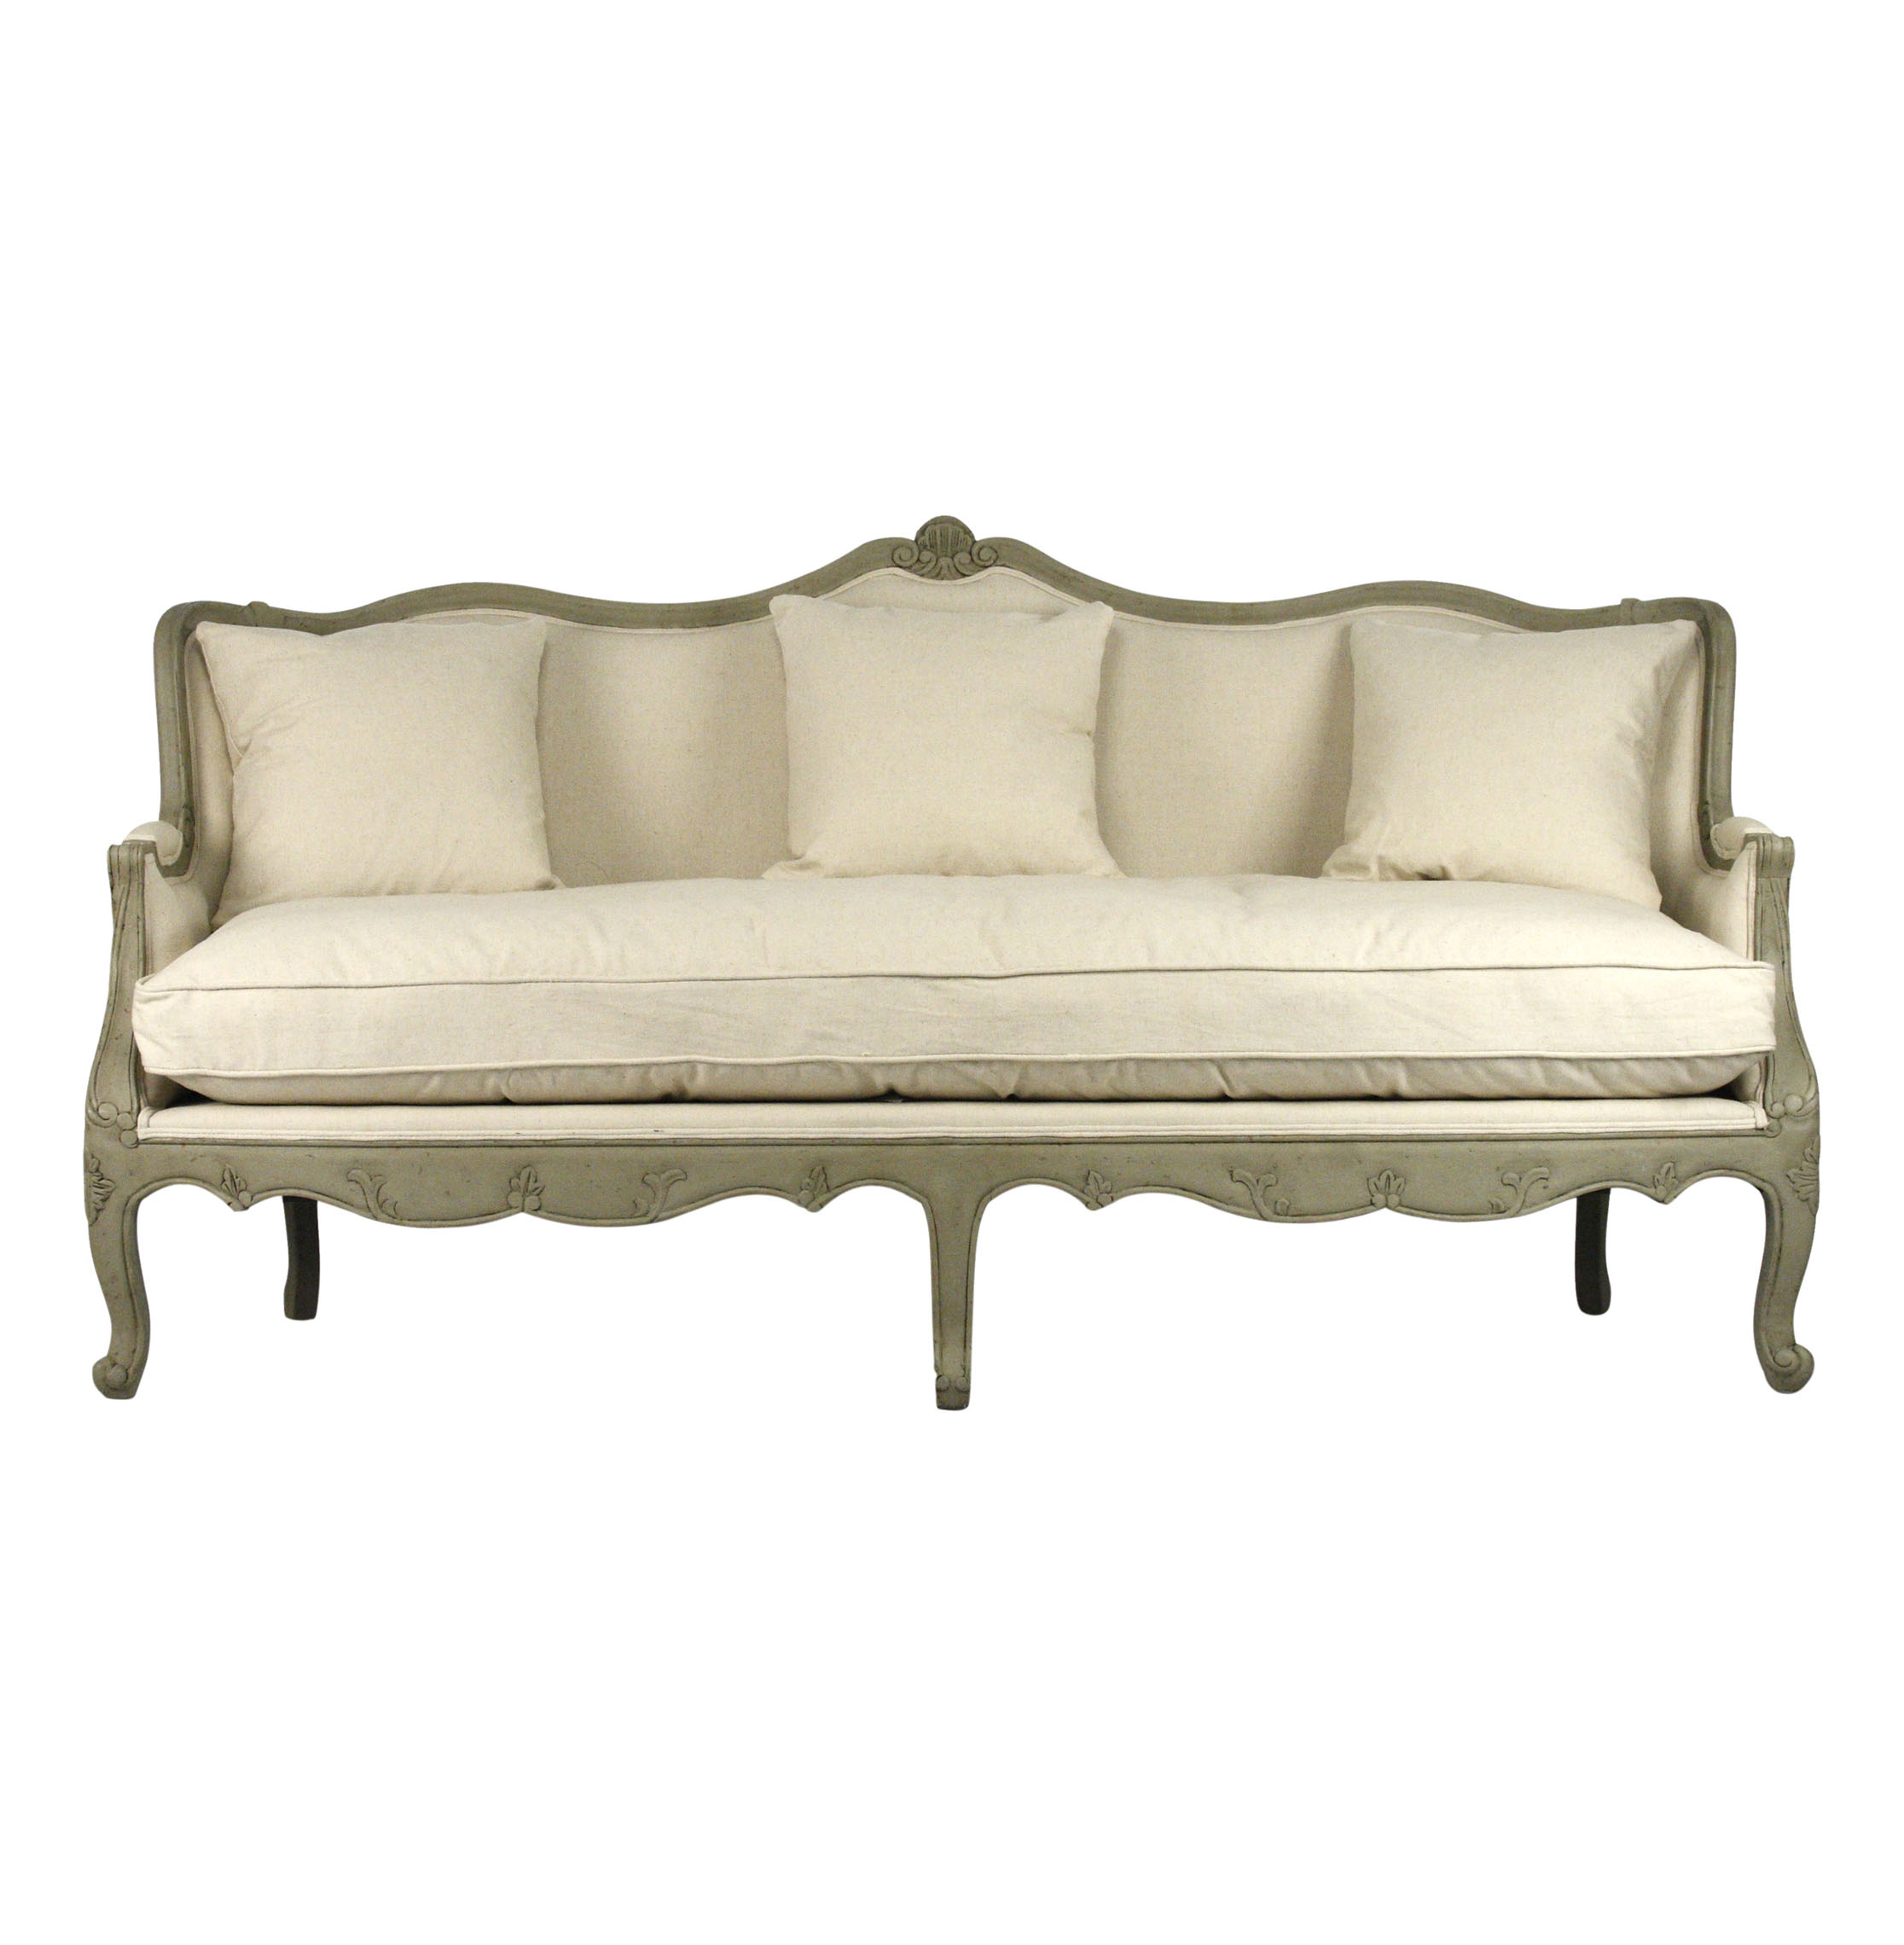 Adele French Country Distressed Sage Green And White Sofa Sofa